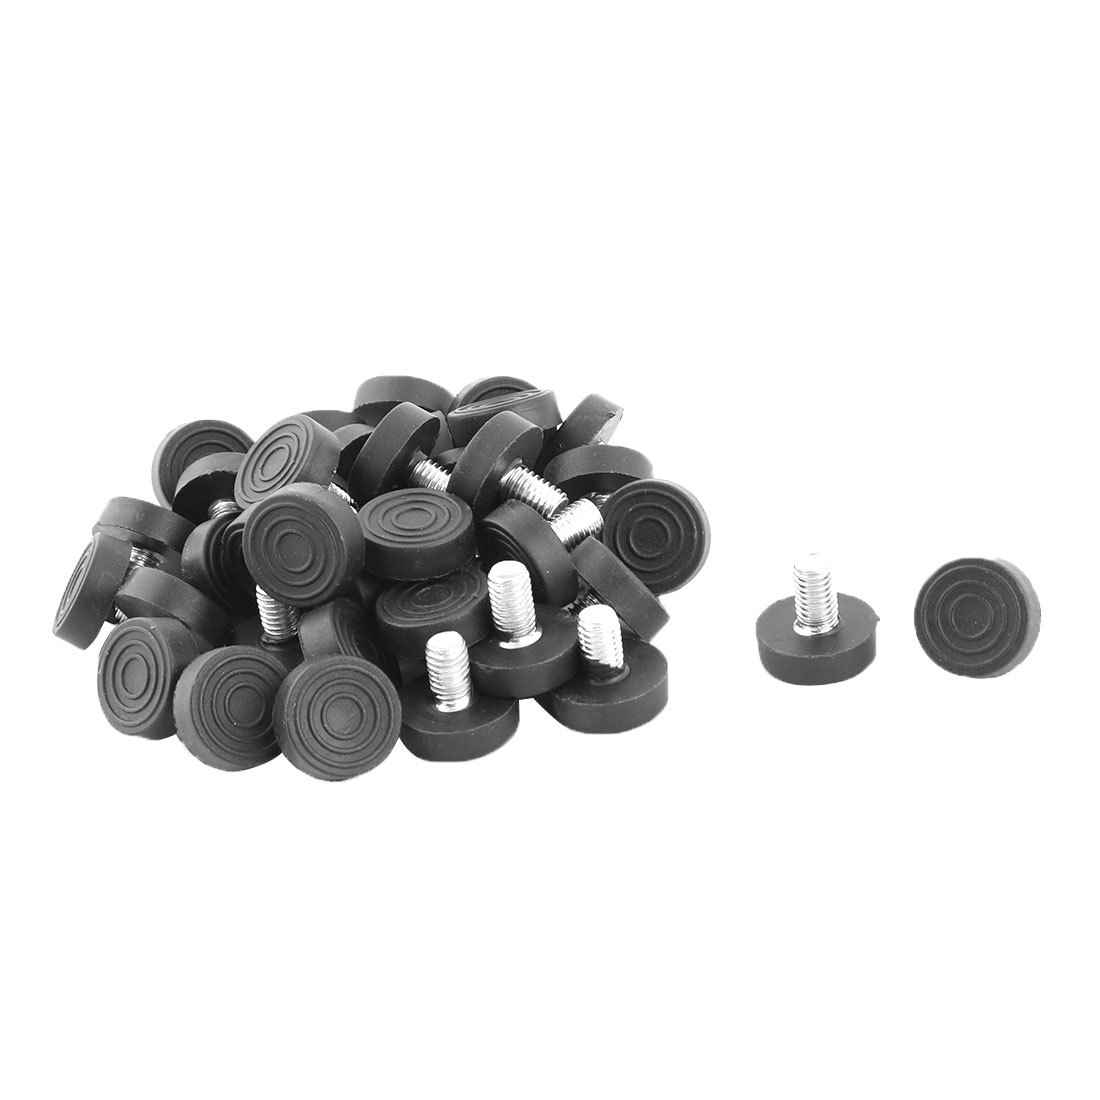 Office Plastic Round Adjustable Non-slip Furniture Leg Leveling Foot 40 Pcs